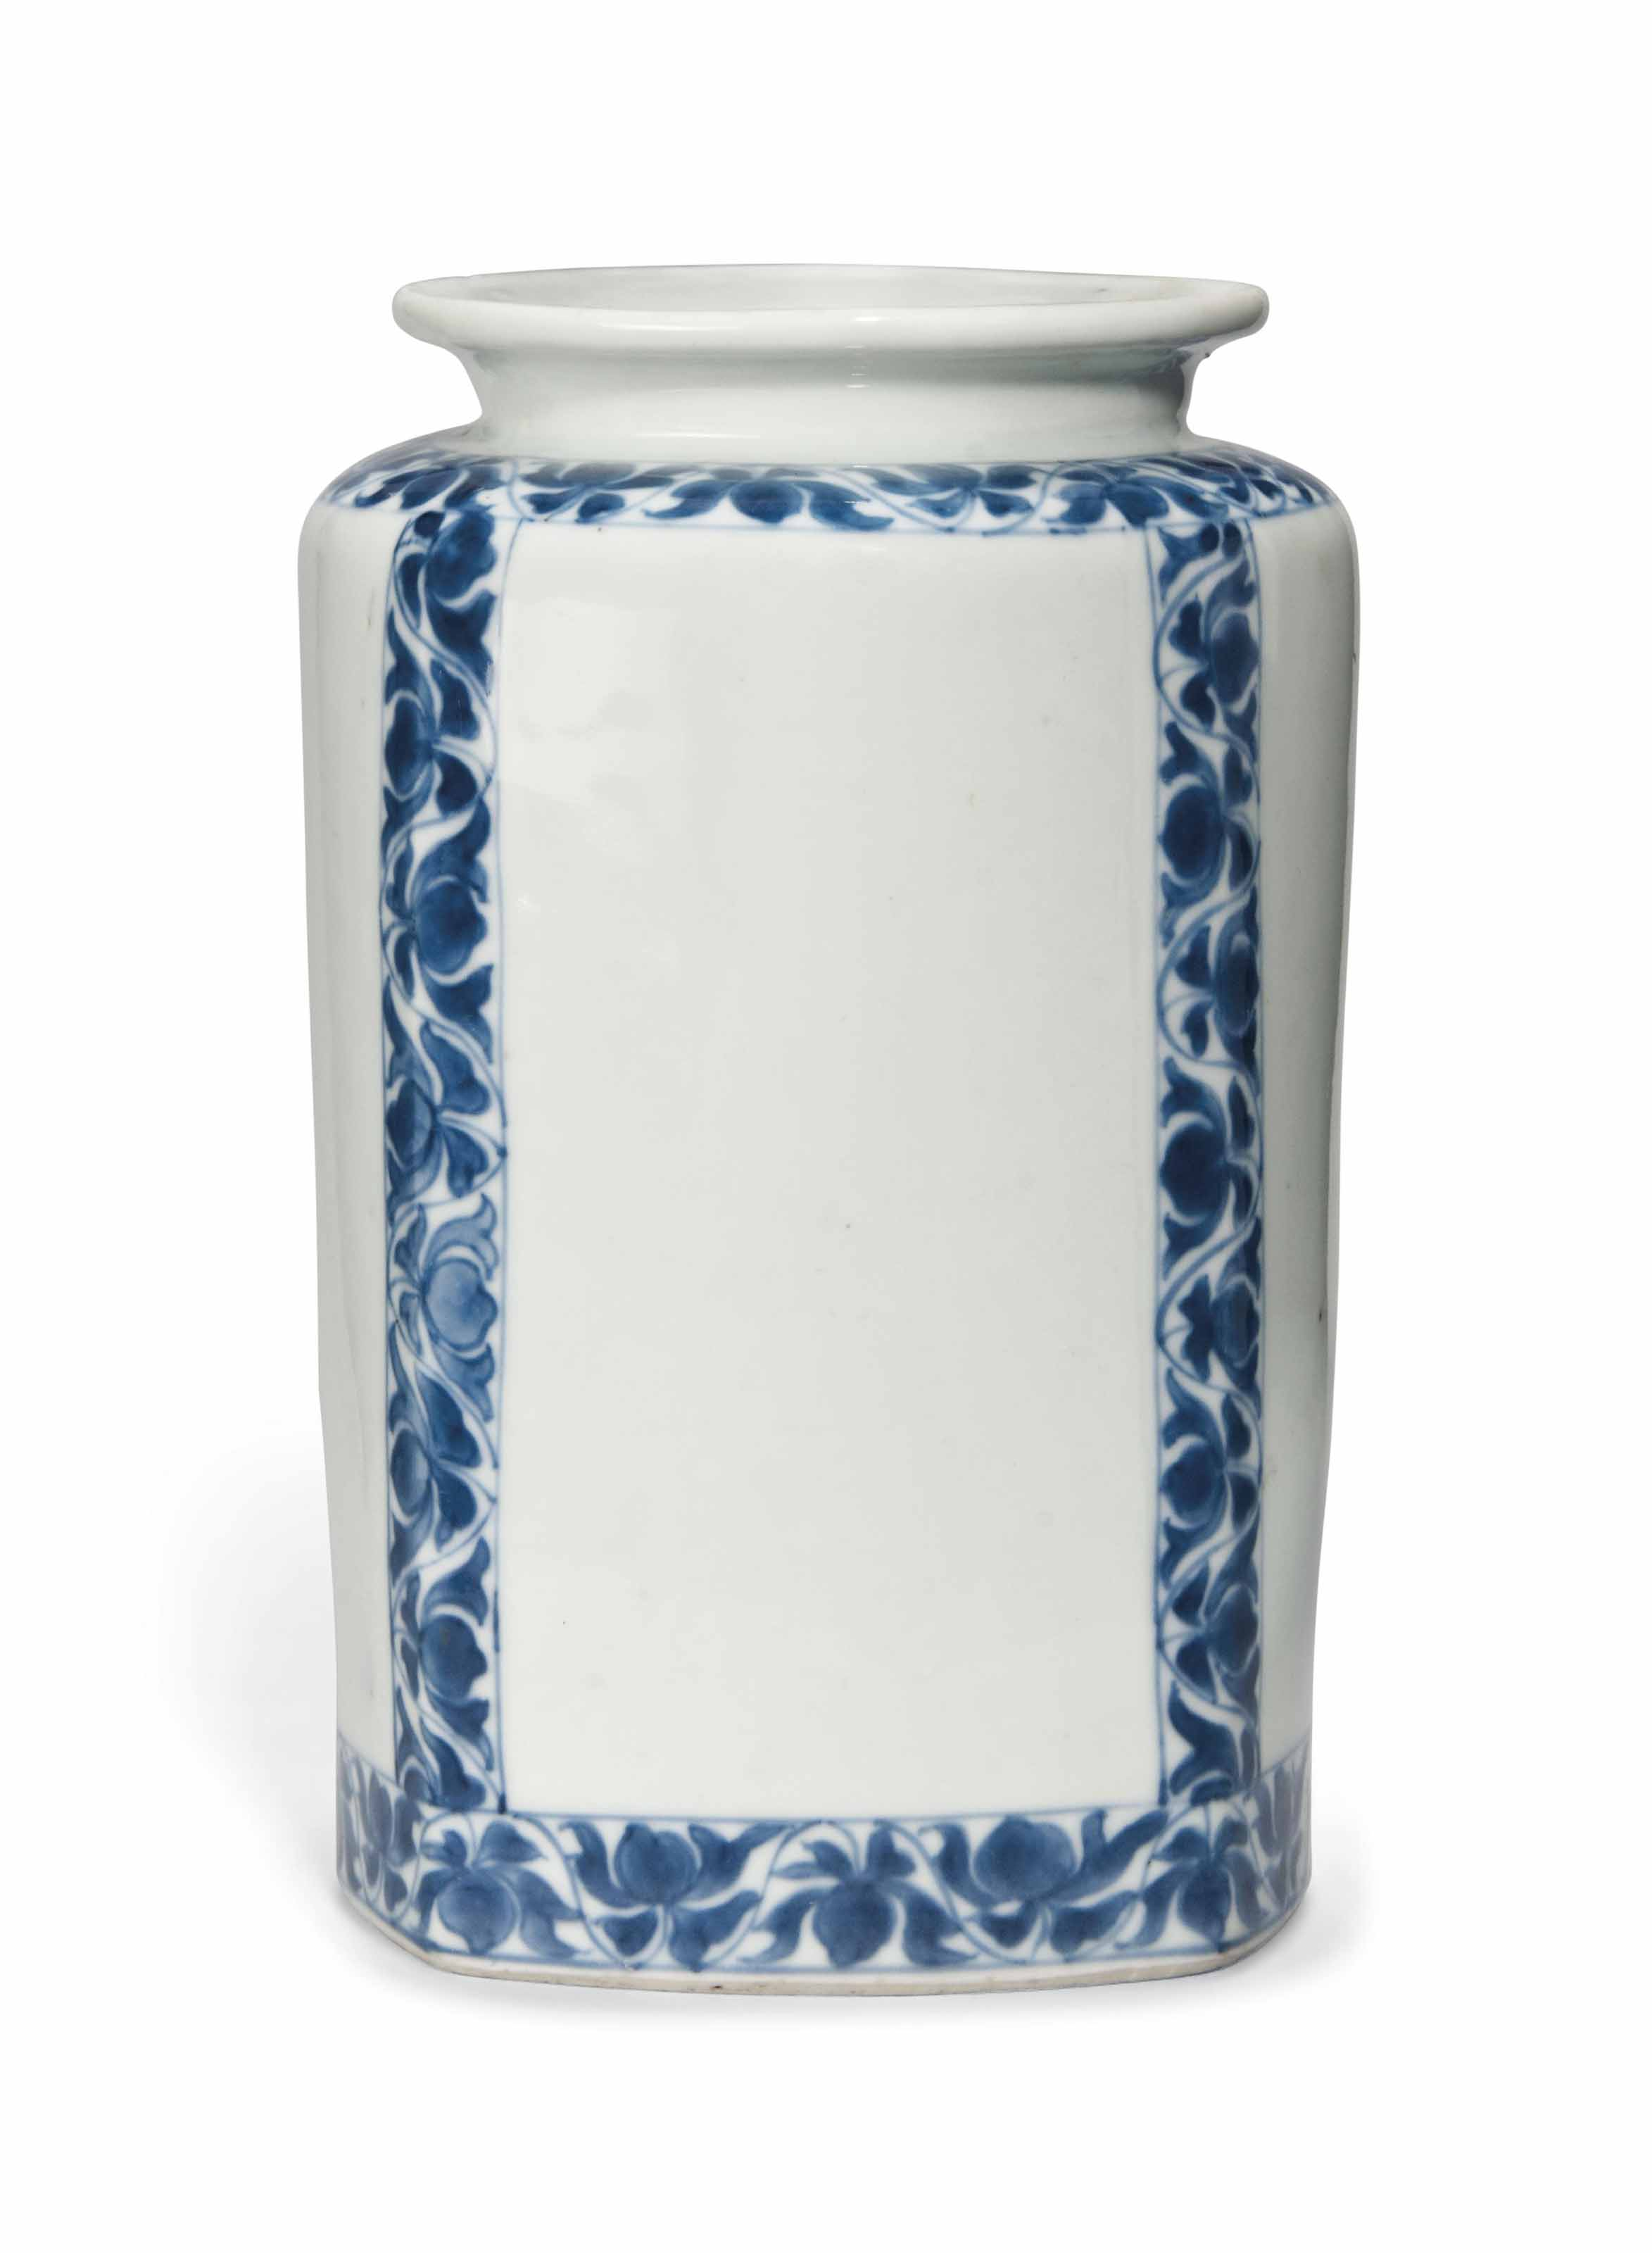 A CHINESE BLUE AND WHITE 'ALBA